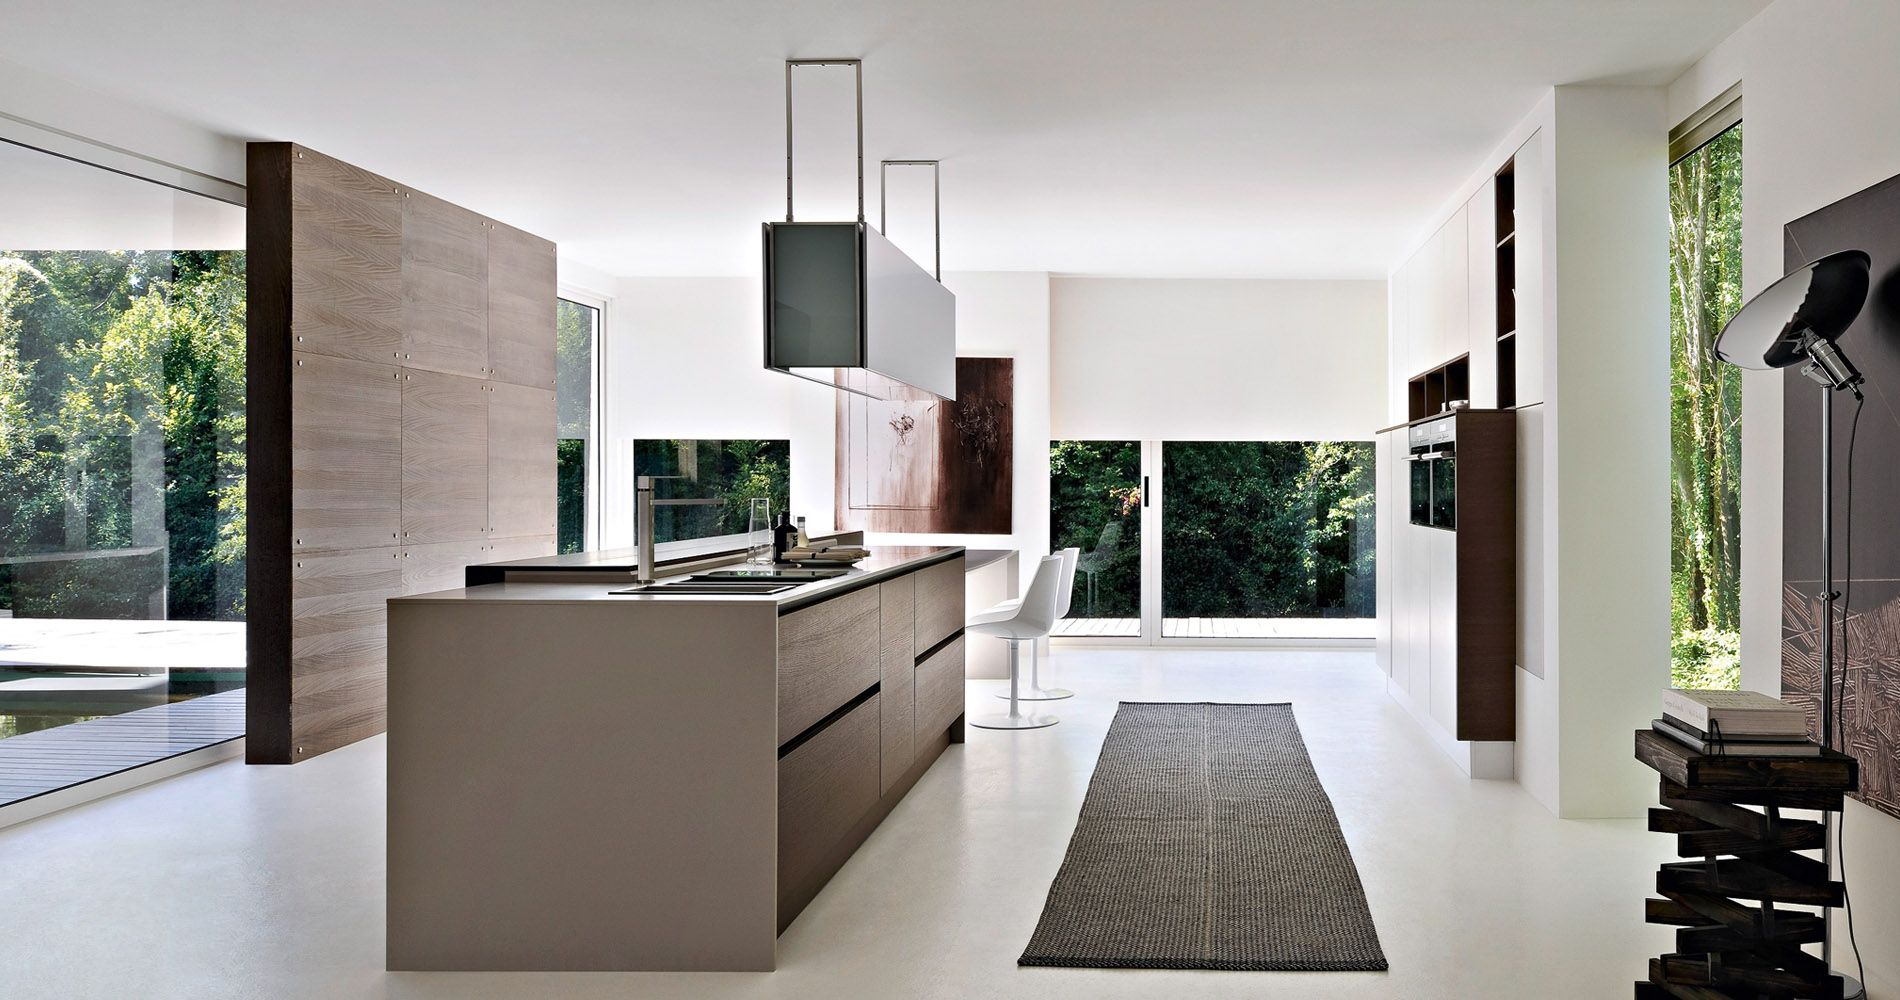 Pedini Kitchen Design Italian German European Modern Kitchens Contemporary Kitchen